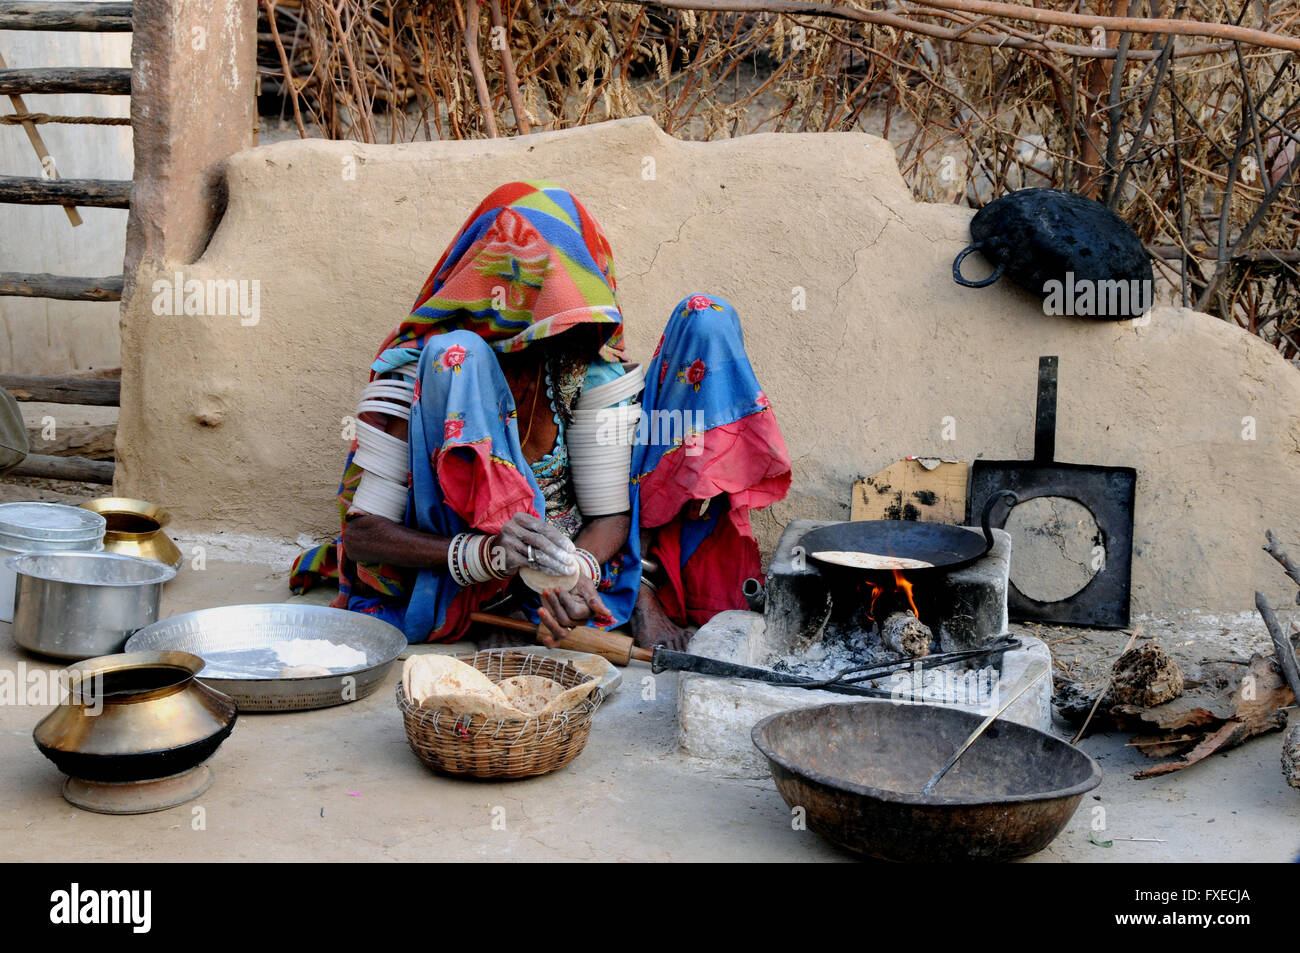 A woman sits making her early morning breakfast chapatis in a village near the northern Indian town of Jojawar. - Stock Image